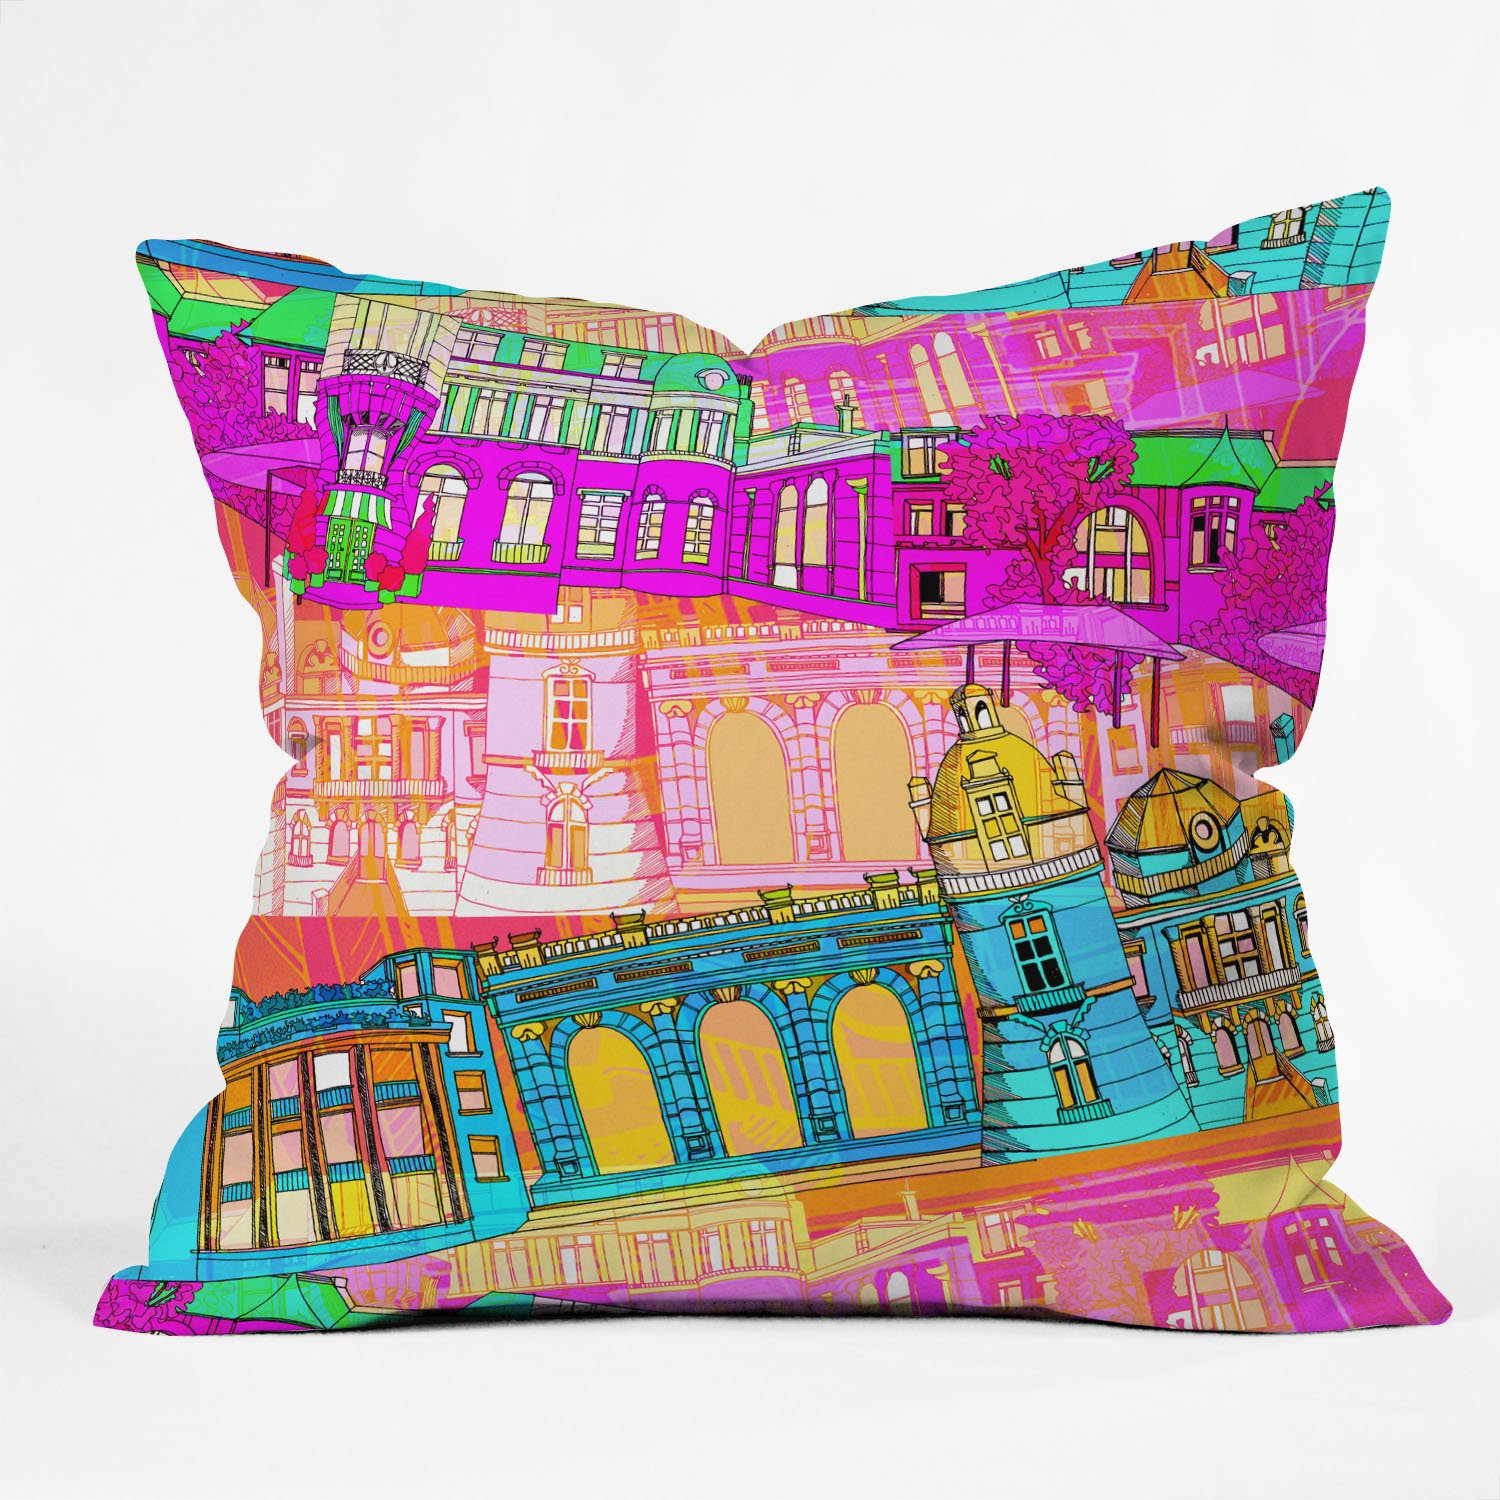 DENY Designs Aimee St Hill City Scape Throw Pillow, 26-INCH BY 26-INCH 18-Inch by 18-Inch